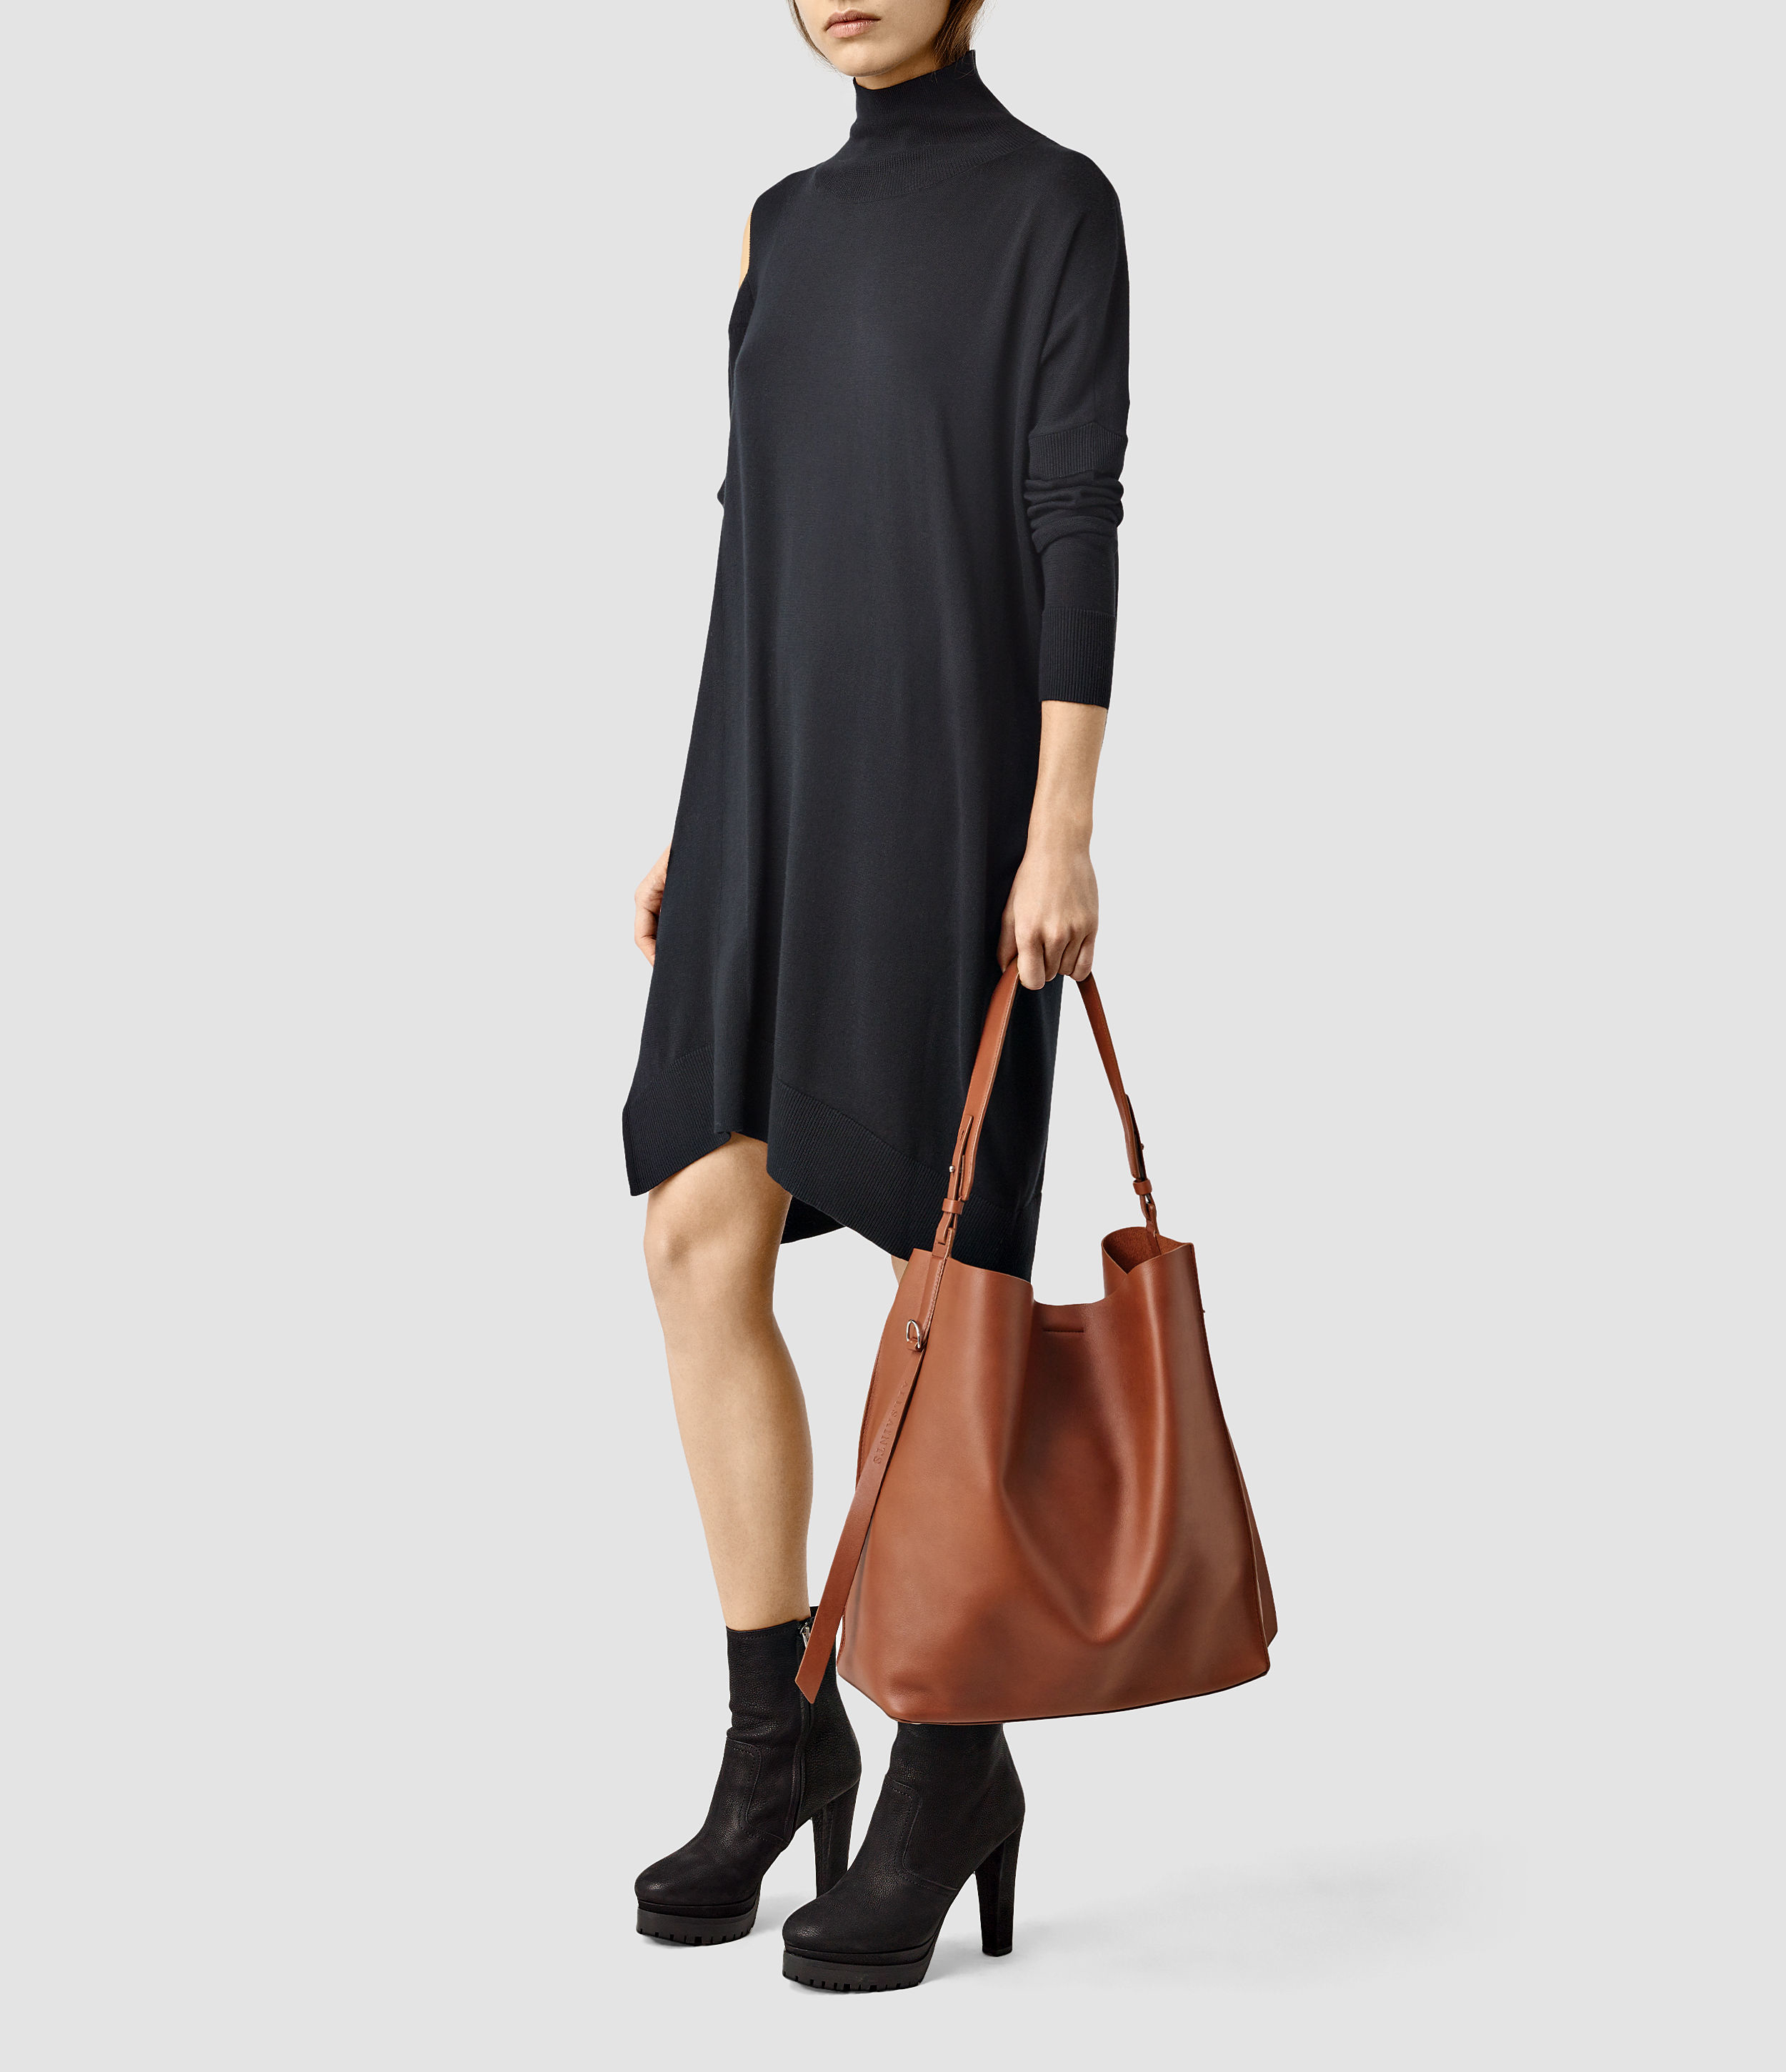 AllSaints Paradise North/South Leather Shoulder Bag Pay With Paypal Online Outlet Real Cheap Wide Range Of For Sale Cheap Real Explore cj6pPl